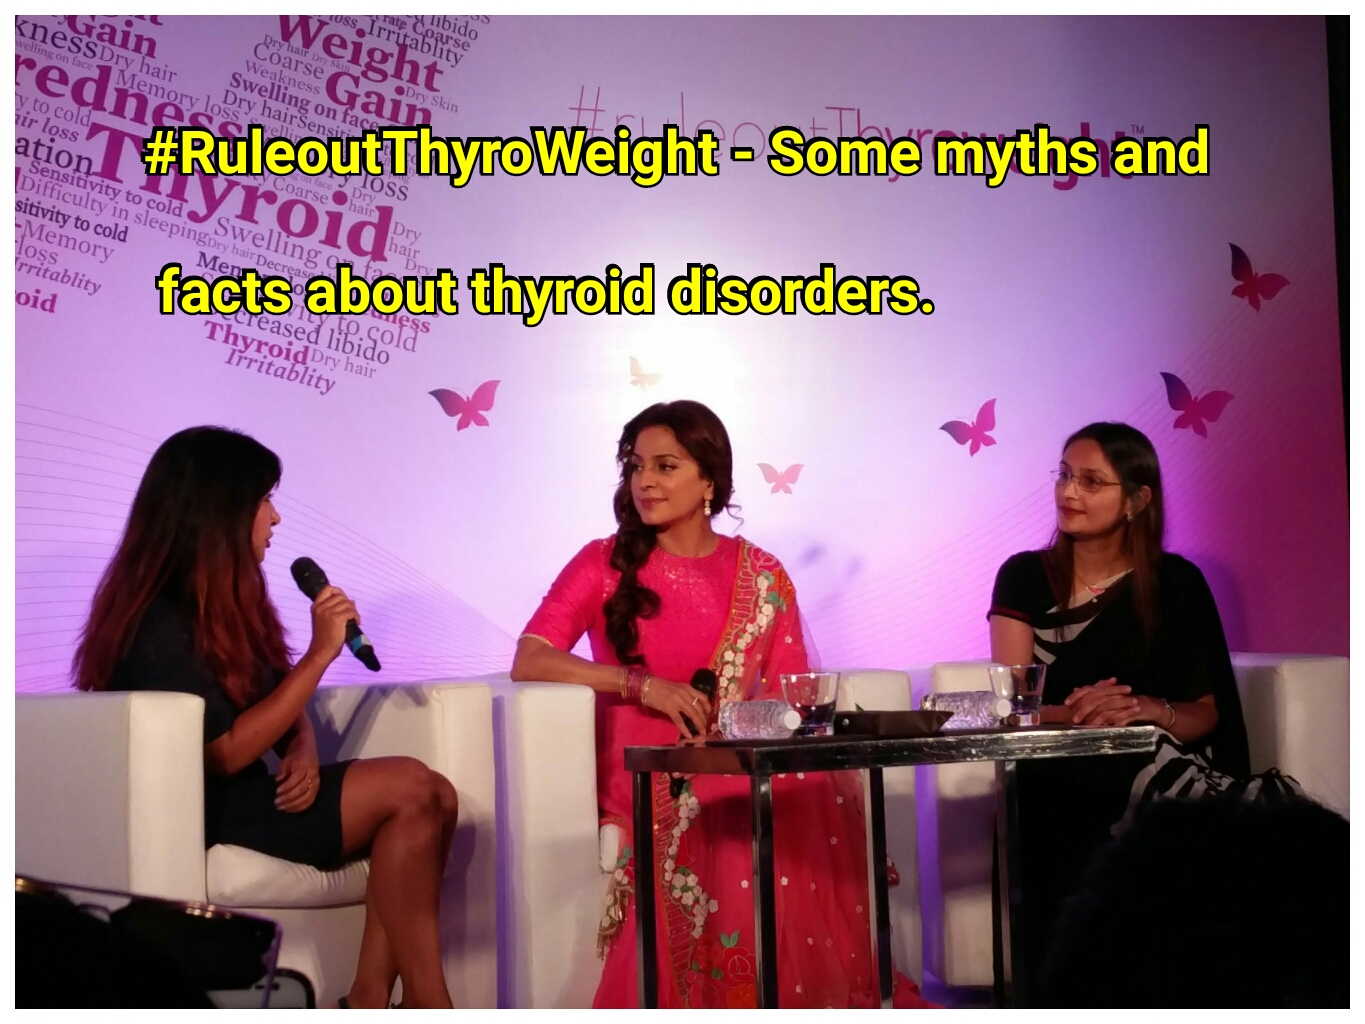 RuleoutThyroWeight bloggers Meet on Thyroid Disorder